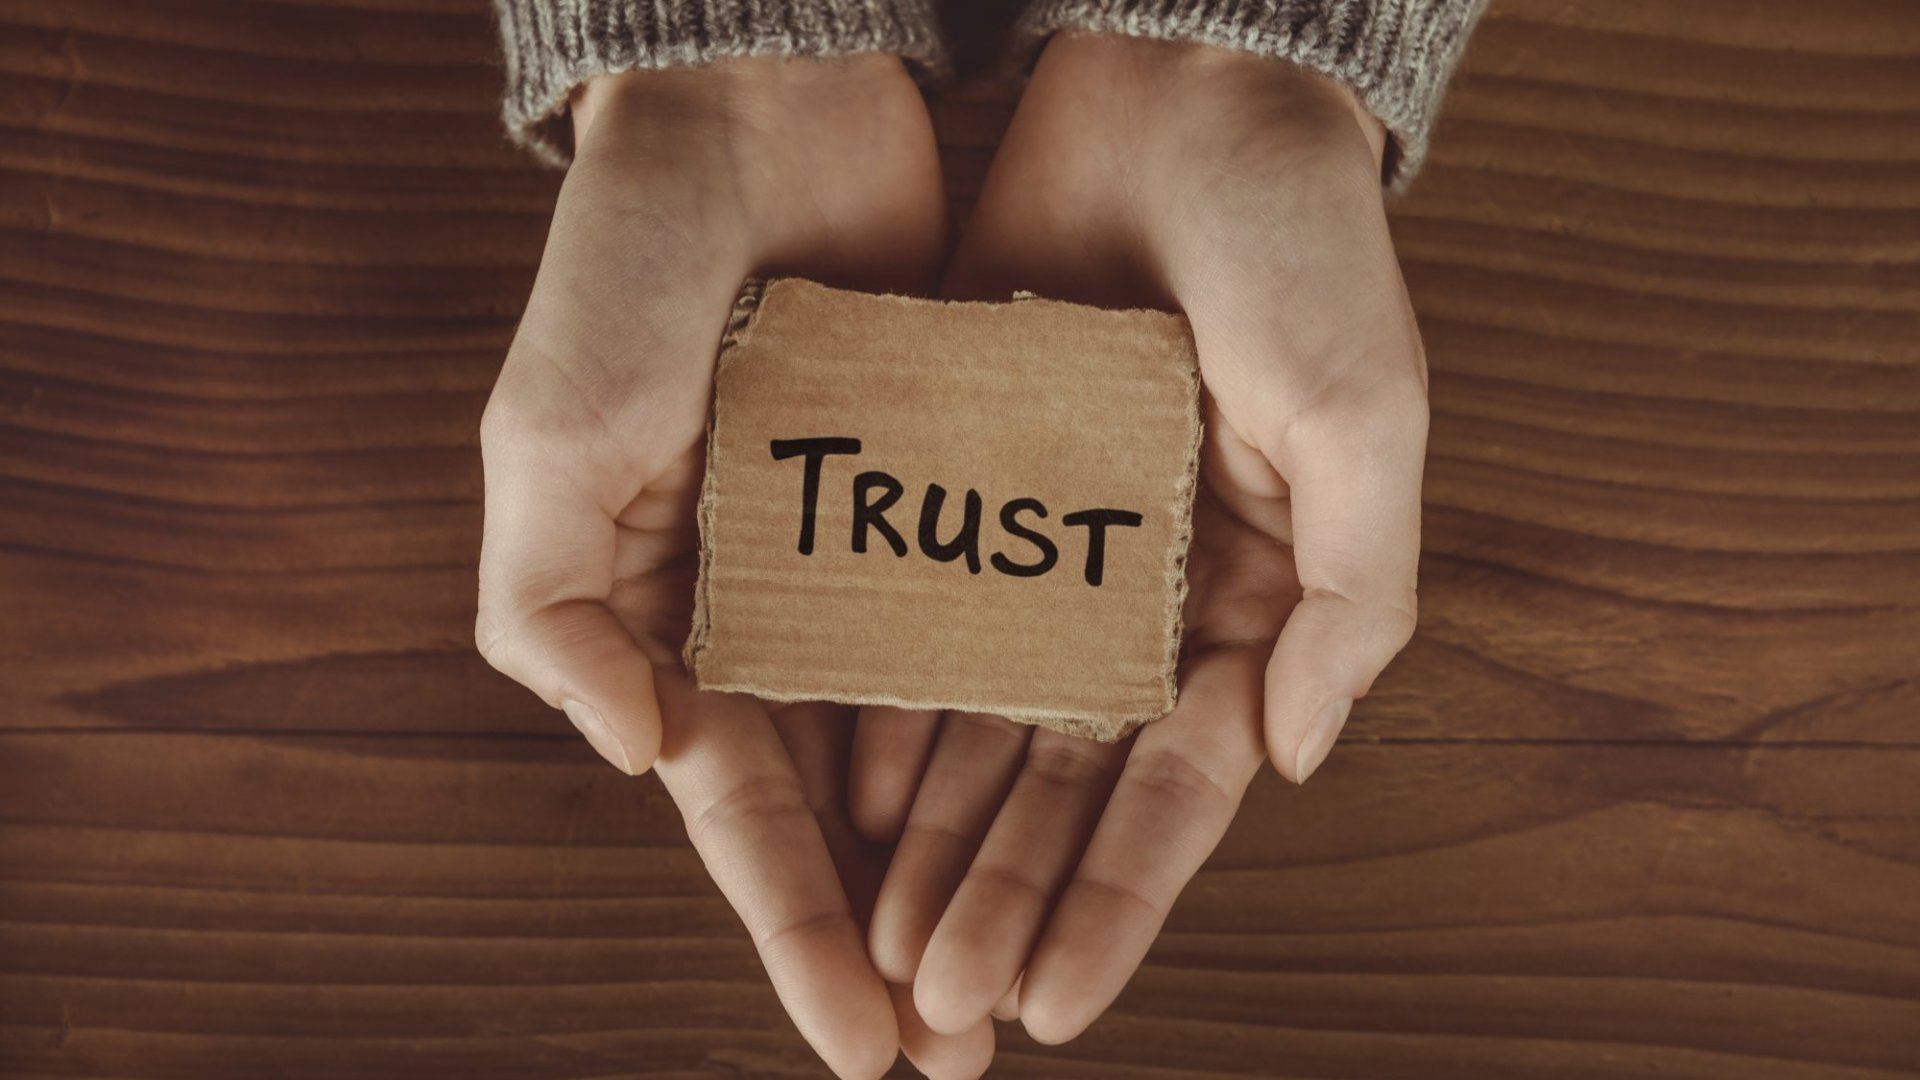 Trust is a commodity in short supply.